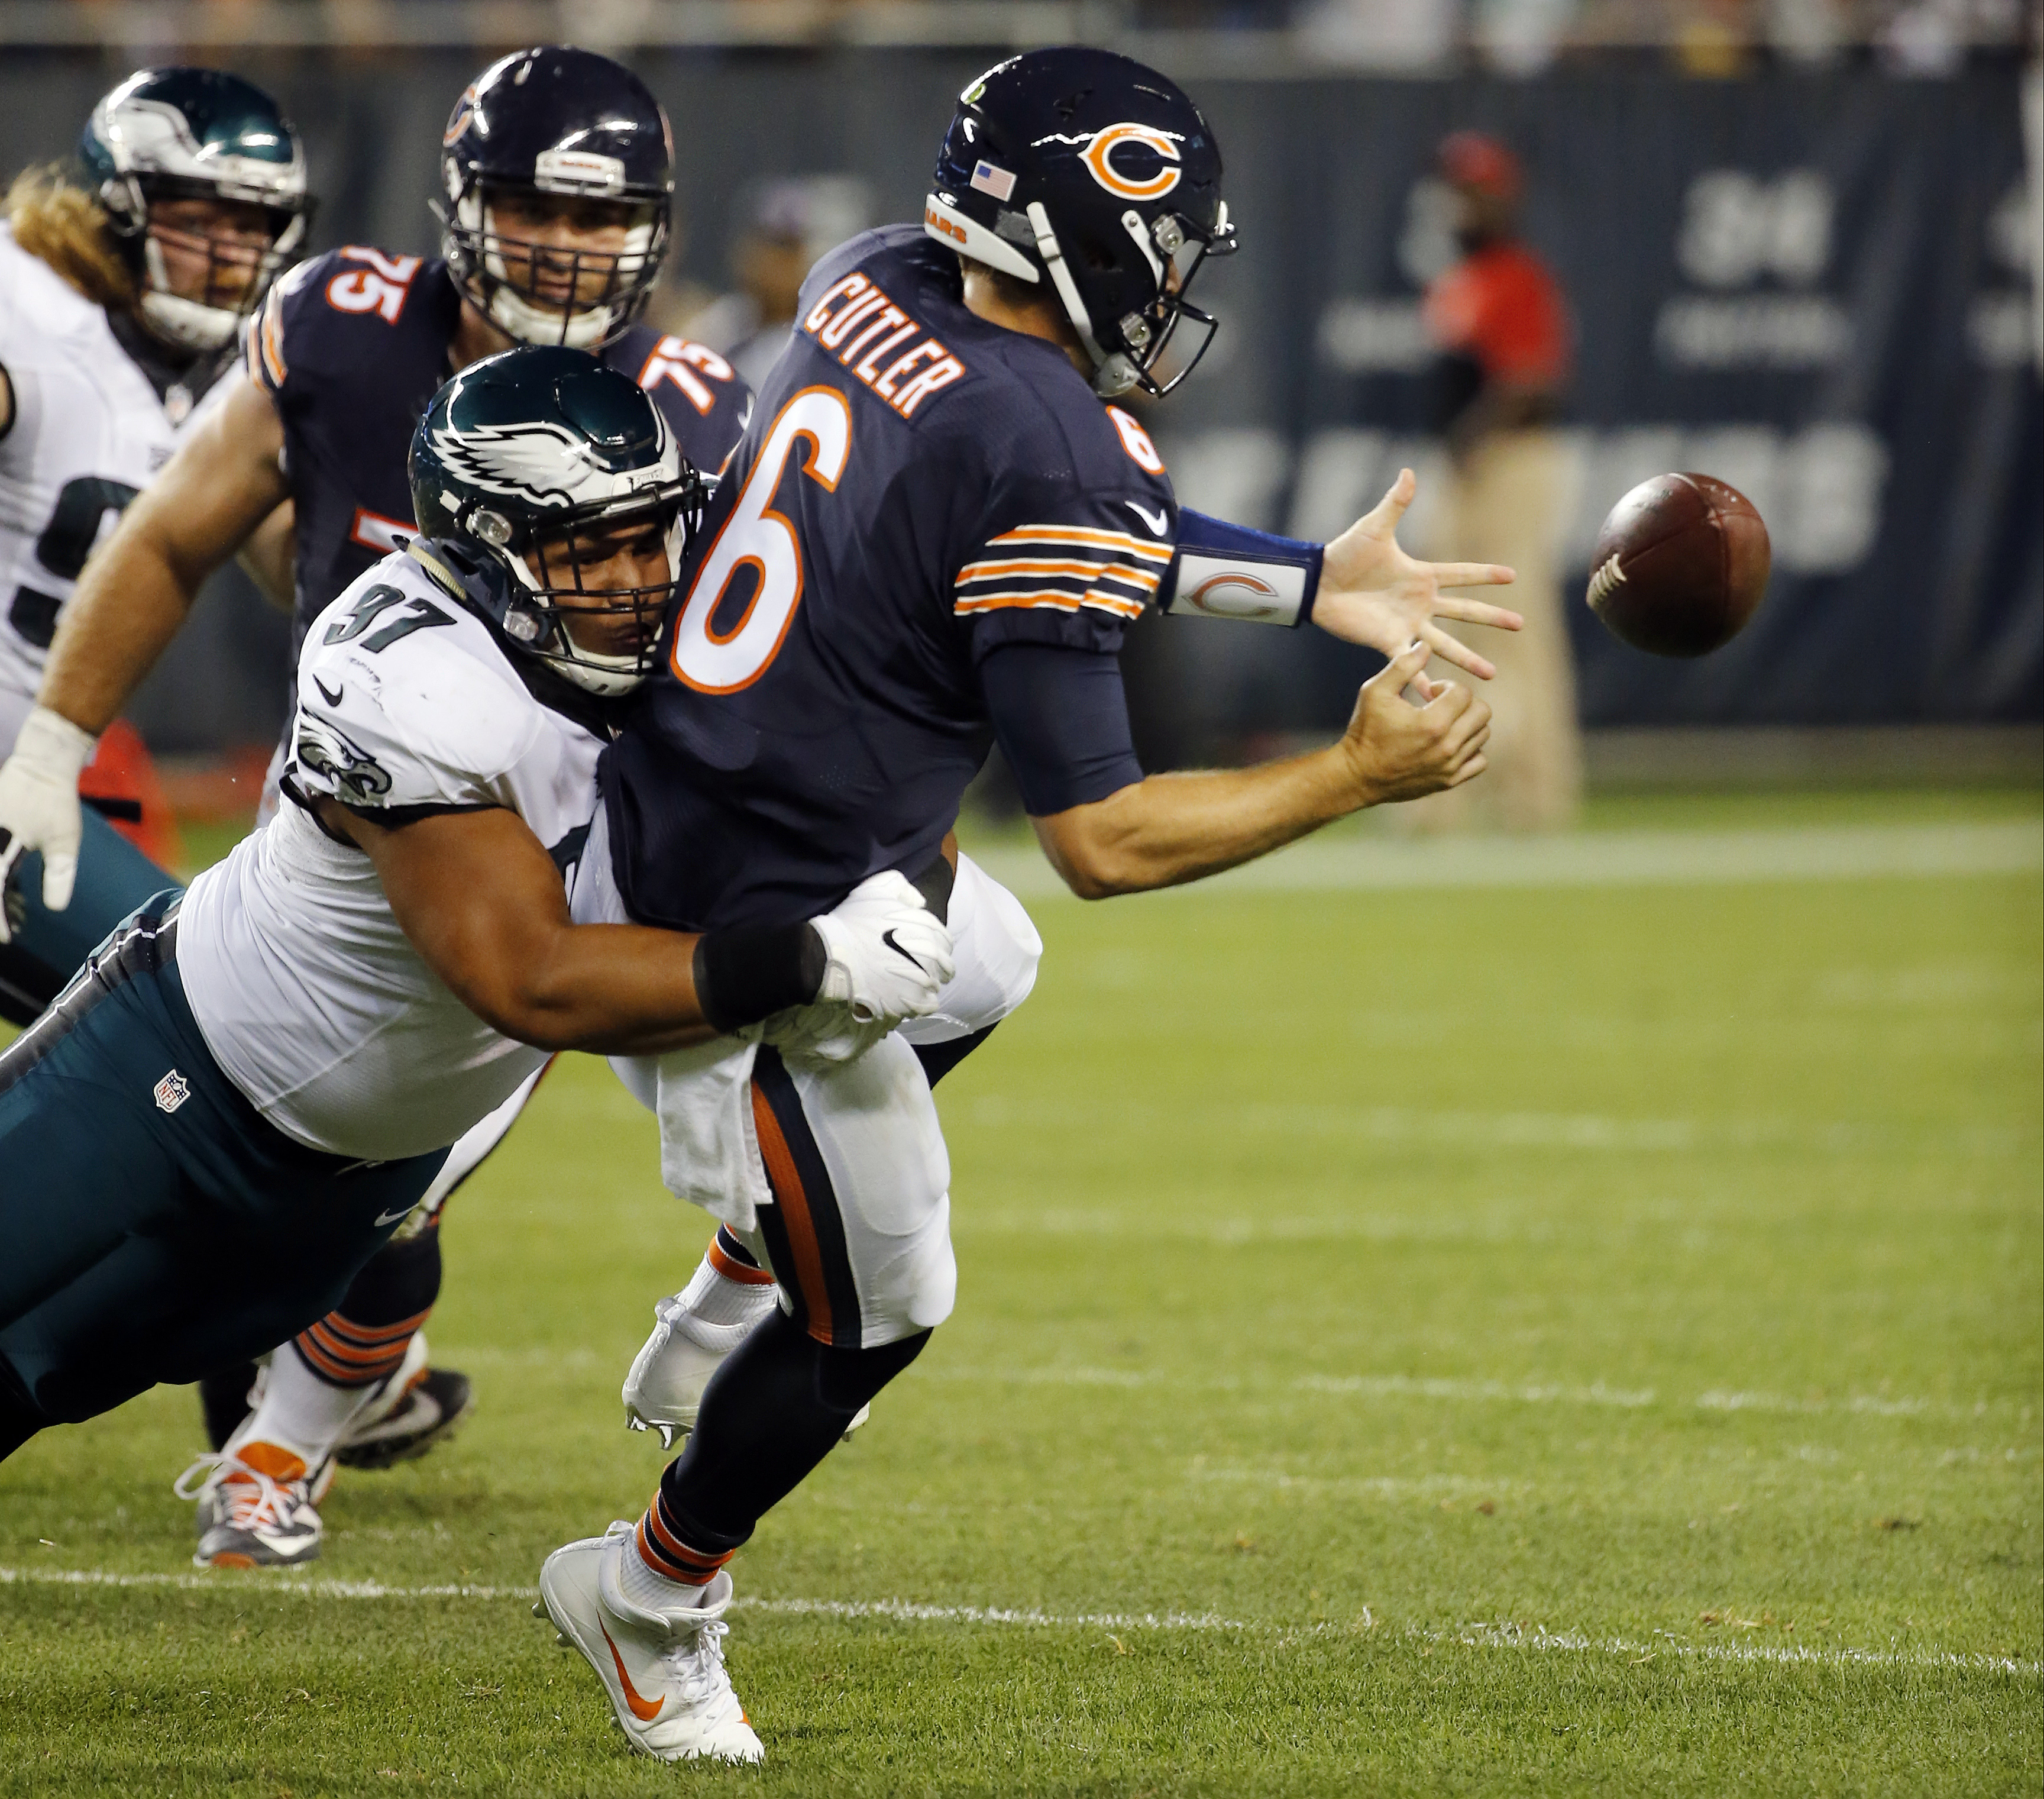 Chicago Bears quarterback Jay Cutler (6) fumbles as he is tackled by Philadelphia Eagles defensive tackle Destiny Vaeao (97) during the second half of an NFL football game, Monday, Sept. 19, 2016, in Chicago. (AP Photo/Charles Rex Arbogast)